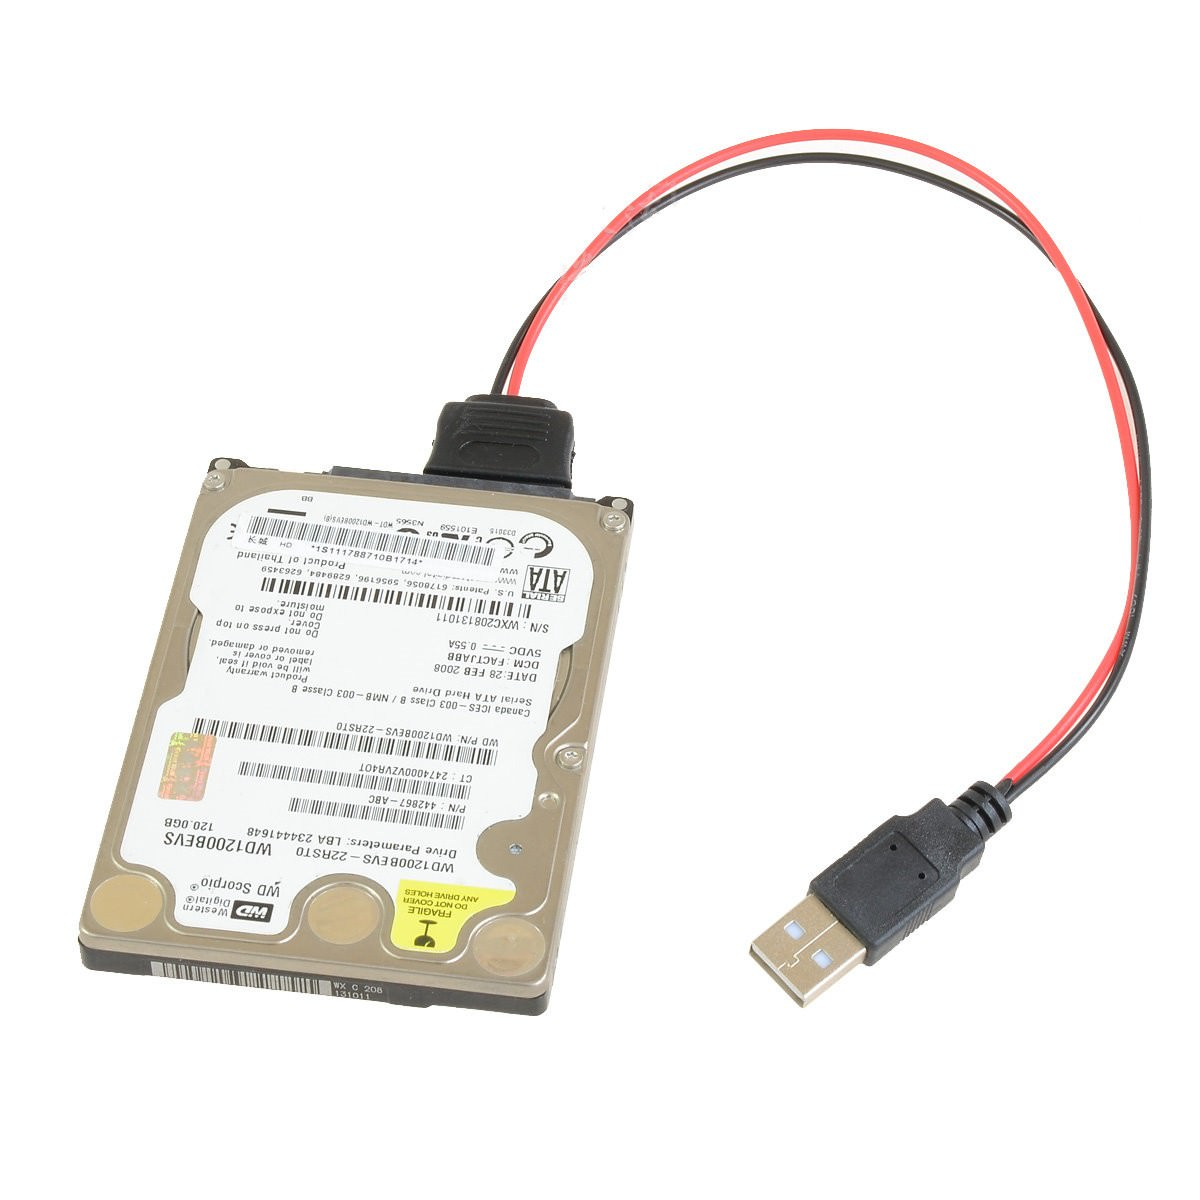 Usb To 2 5 Ssd 5 Pin Sata Power Adapter Cable (20cm) Moddiy Com 5 Wire 15 Pin Sata Wiring Diagram